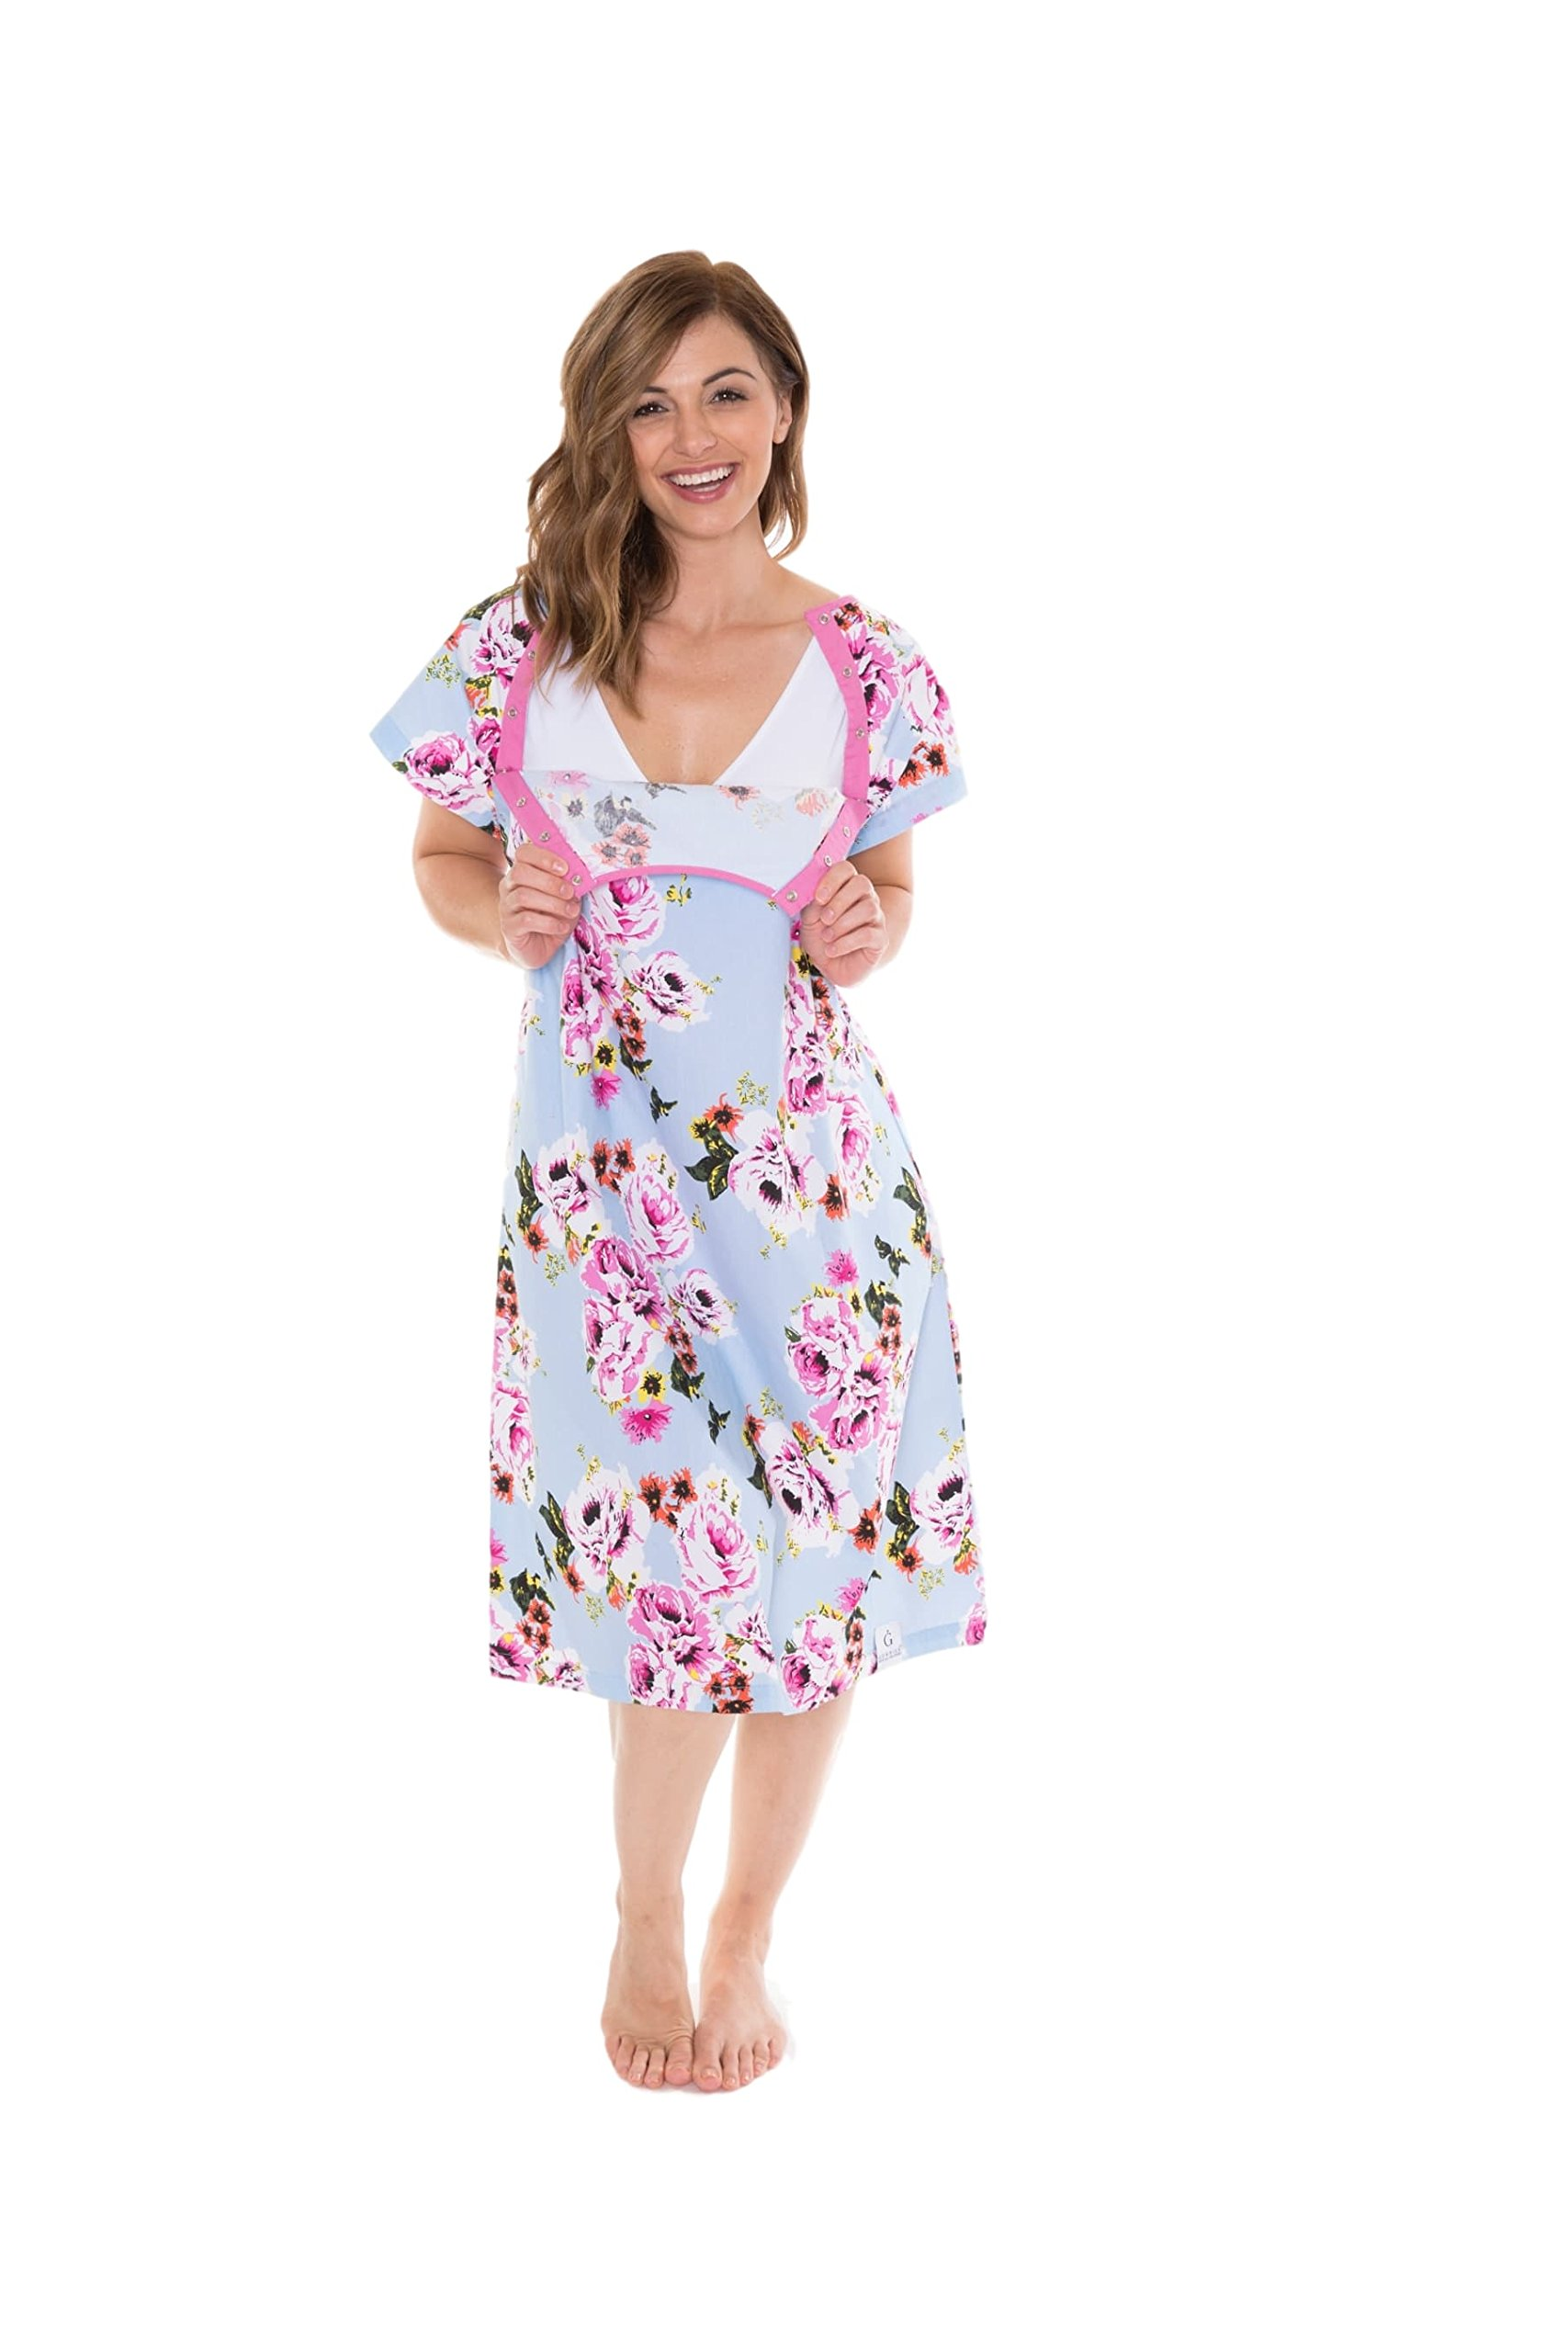 Gownies Labor and delivery Maternity Hospital Gown and Pillowcase ...